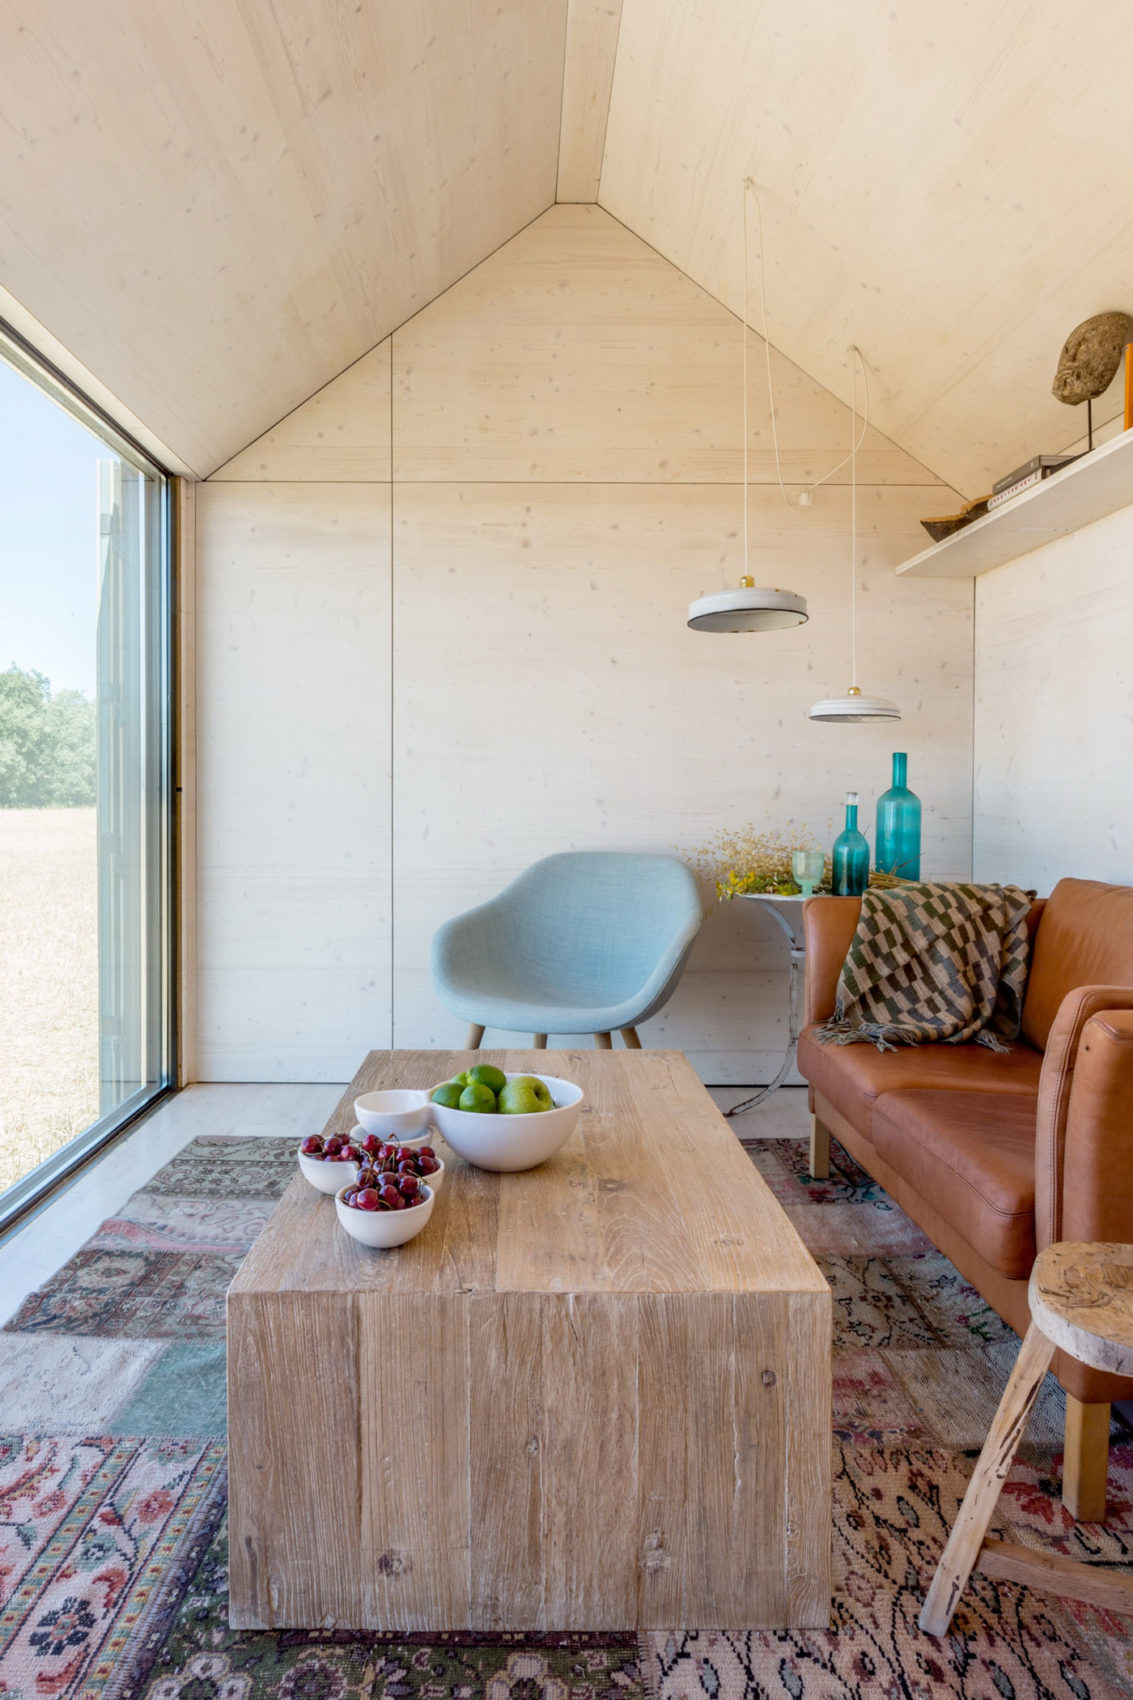 Portable Home APH80 by ÁBATON Arquitectura (10)